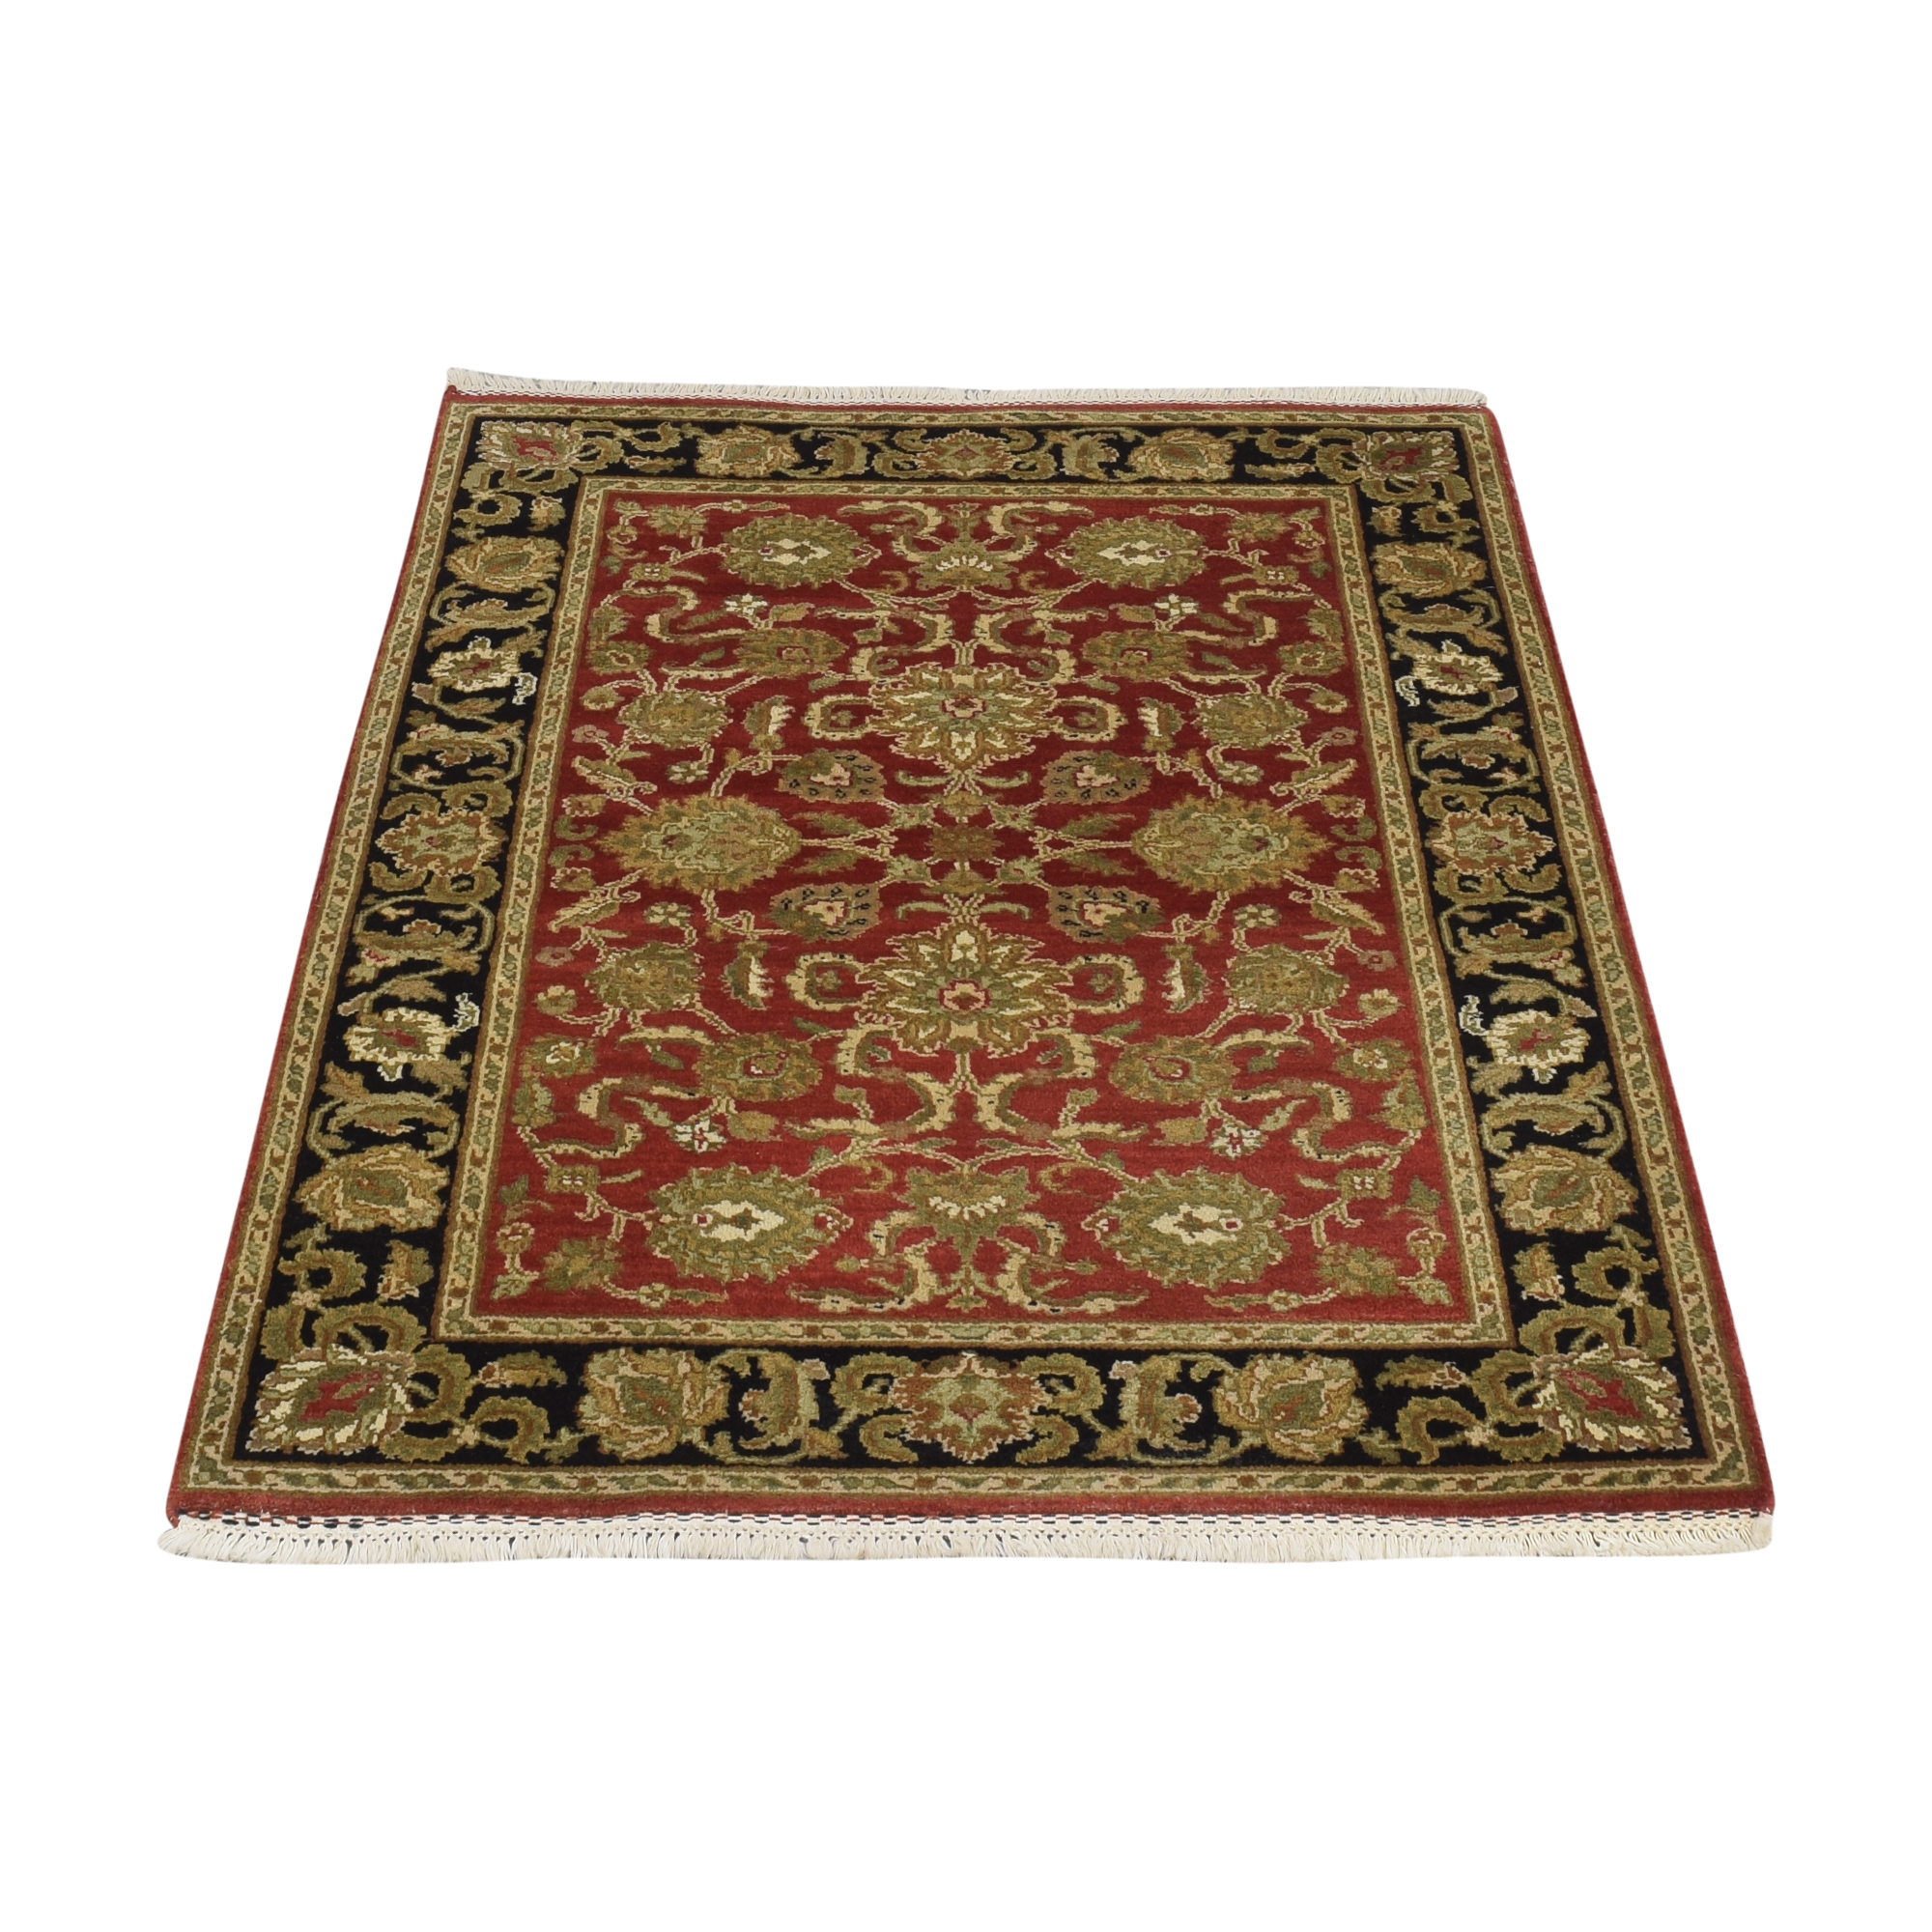 Home Decorators Collection Home Decorators Collection Santana Area Rug dimensions